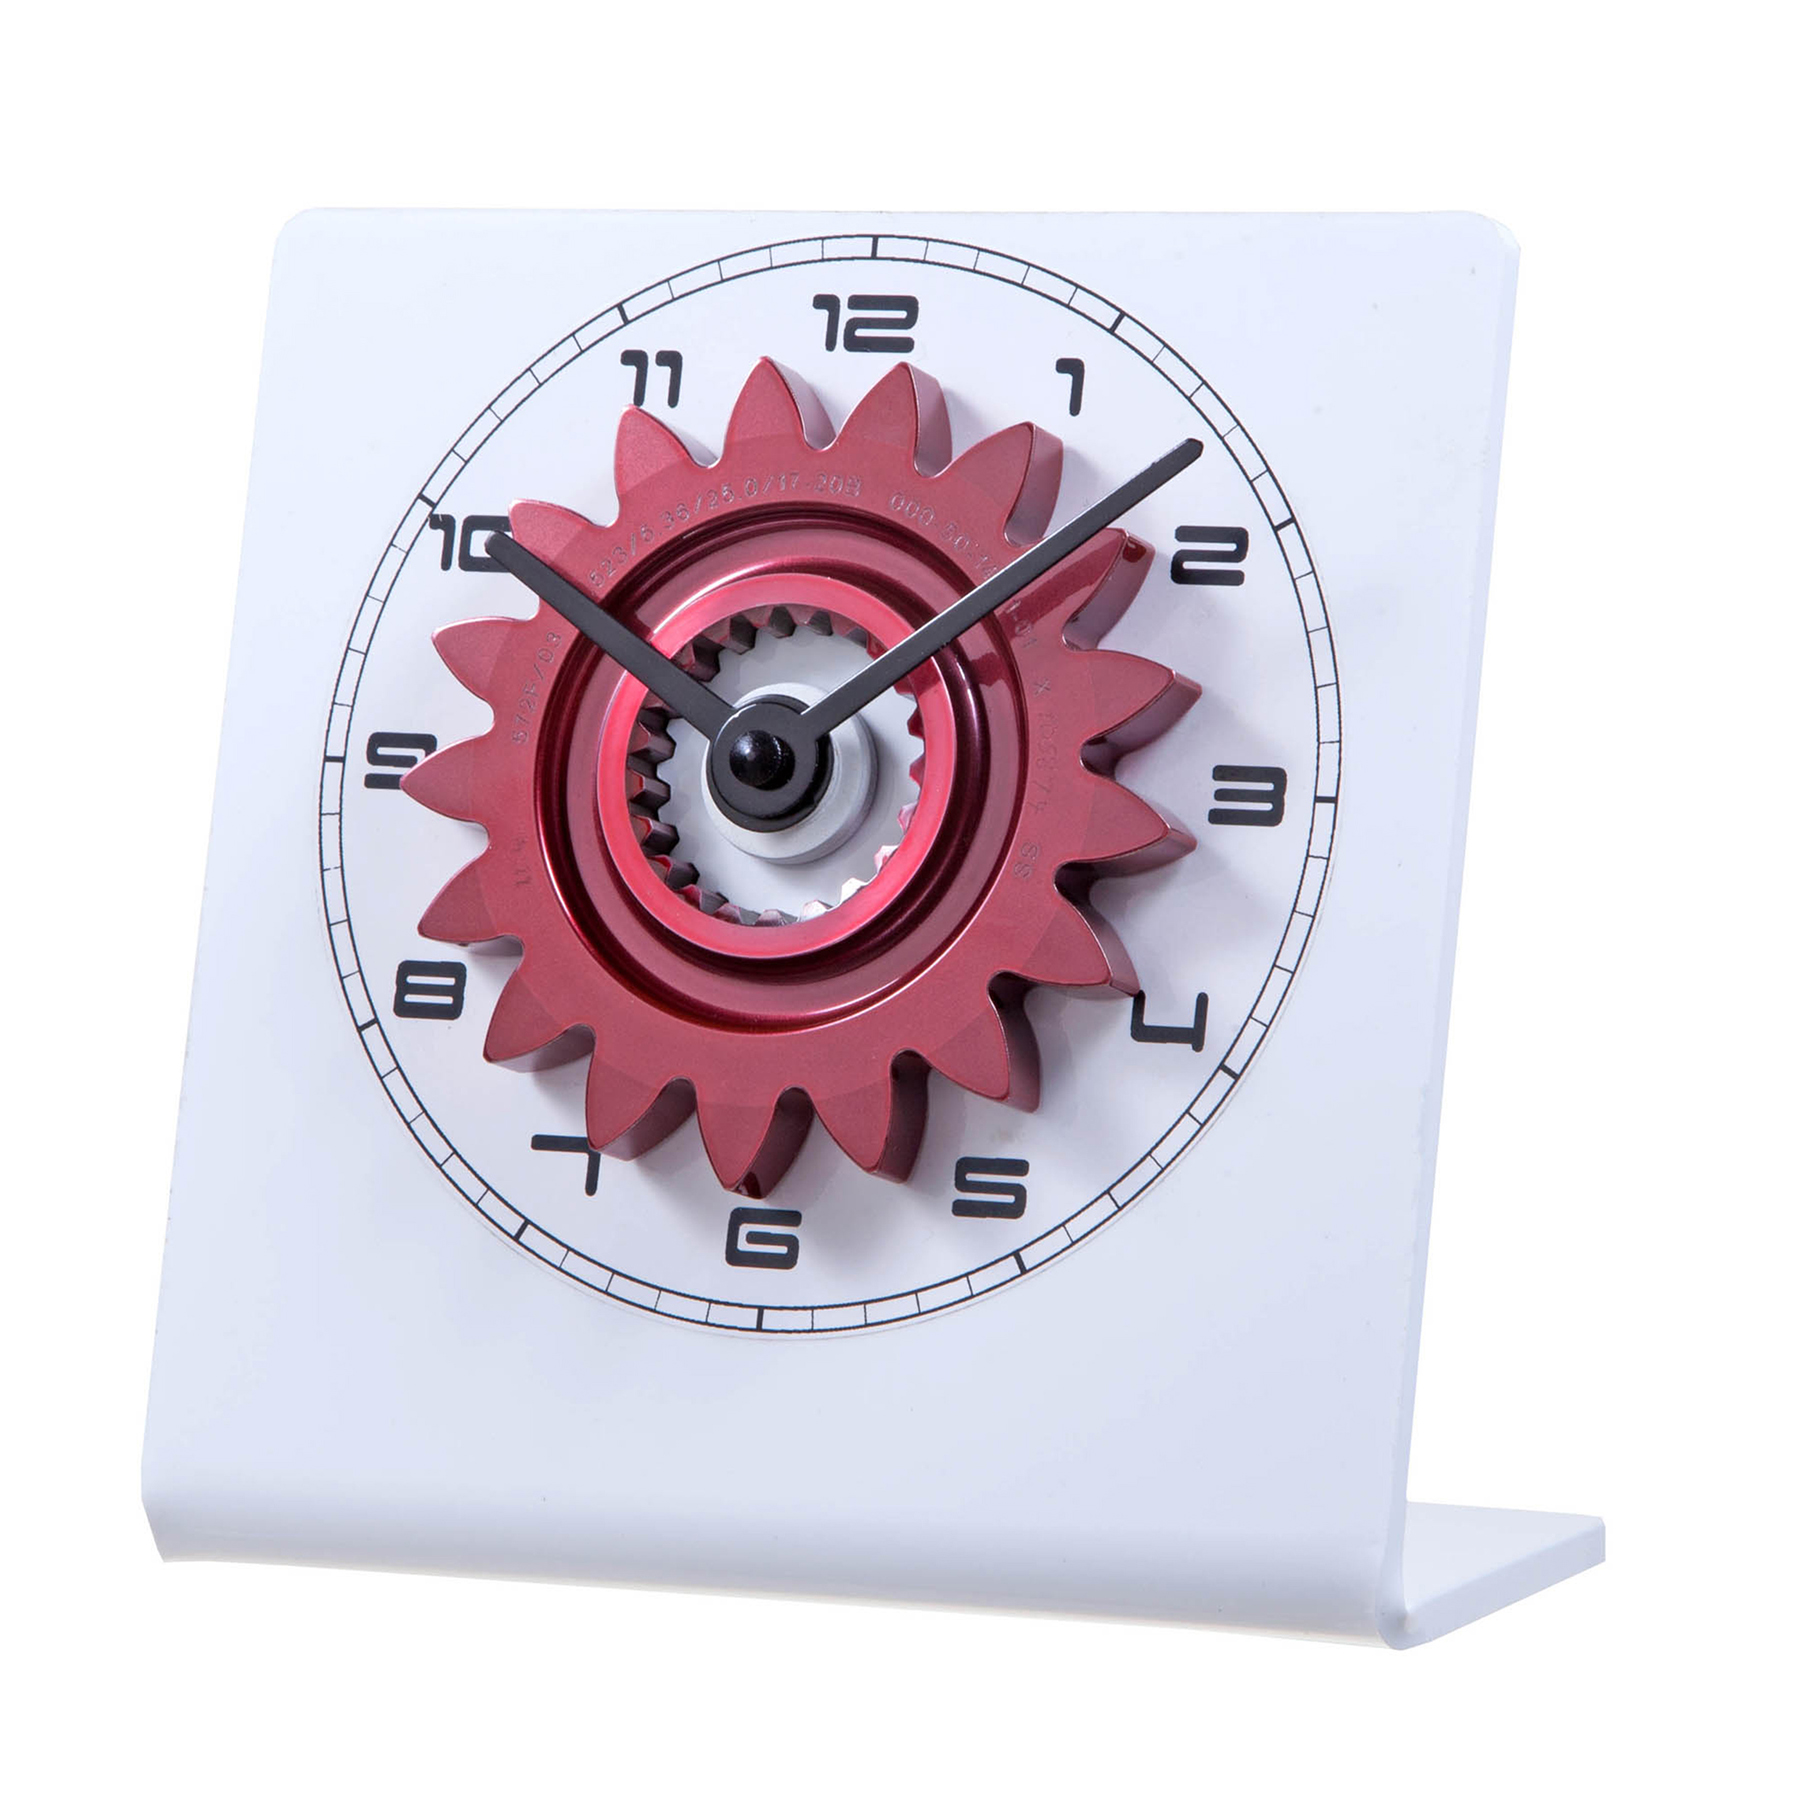 Formula One Gear Ratio Clock - Red and White